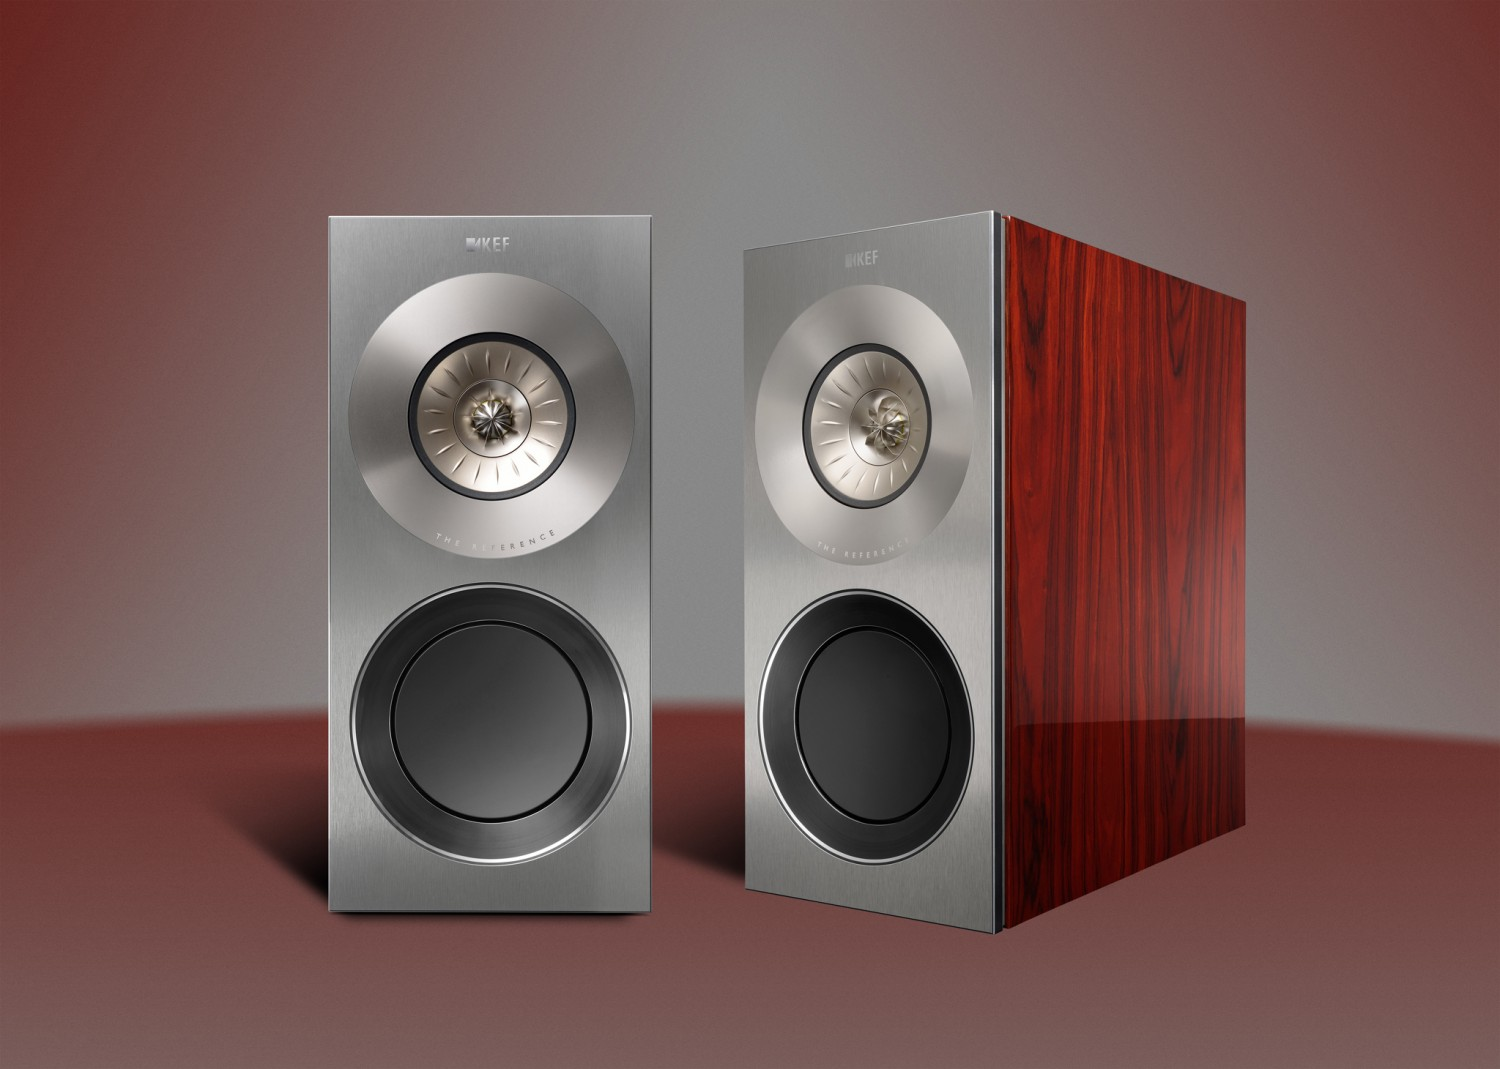 test lautsprecher stereo kef reference 1 sehr gut seite 1. Black Bedroom Furniture Sets. Home Design Ideas